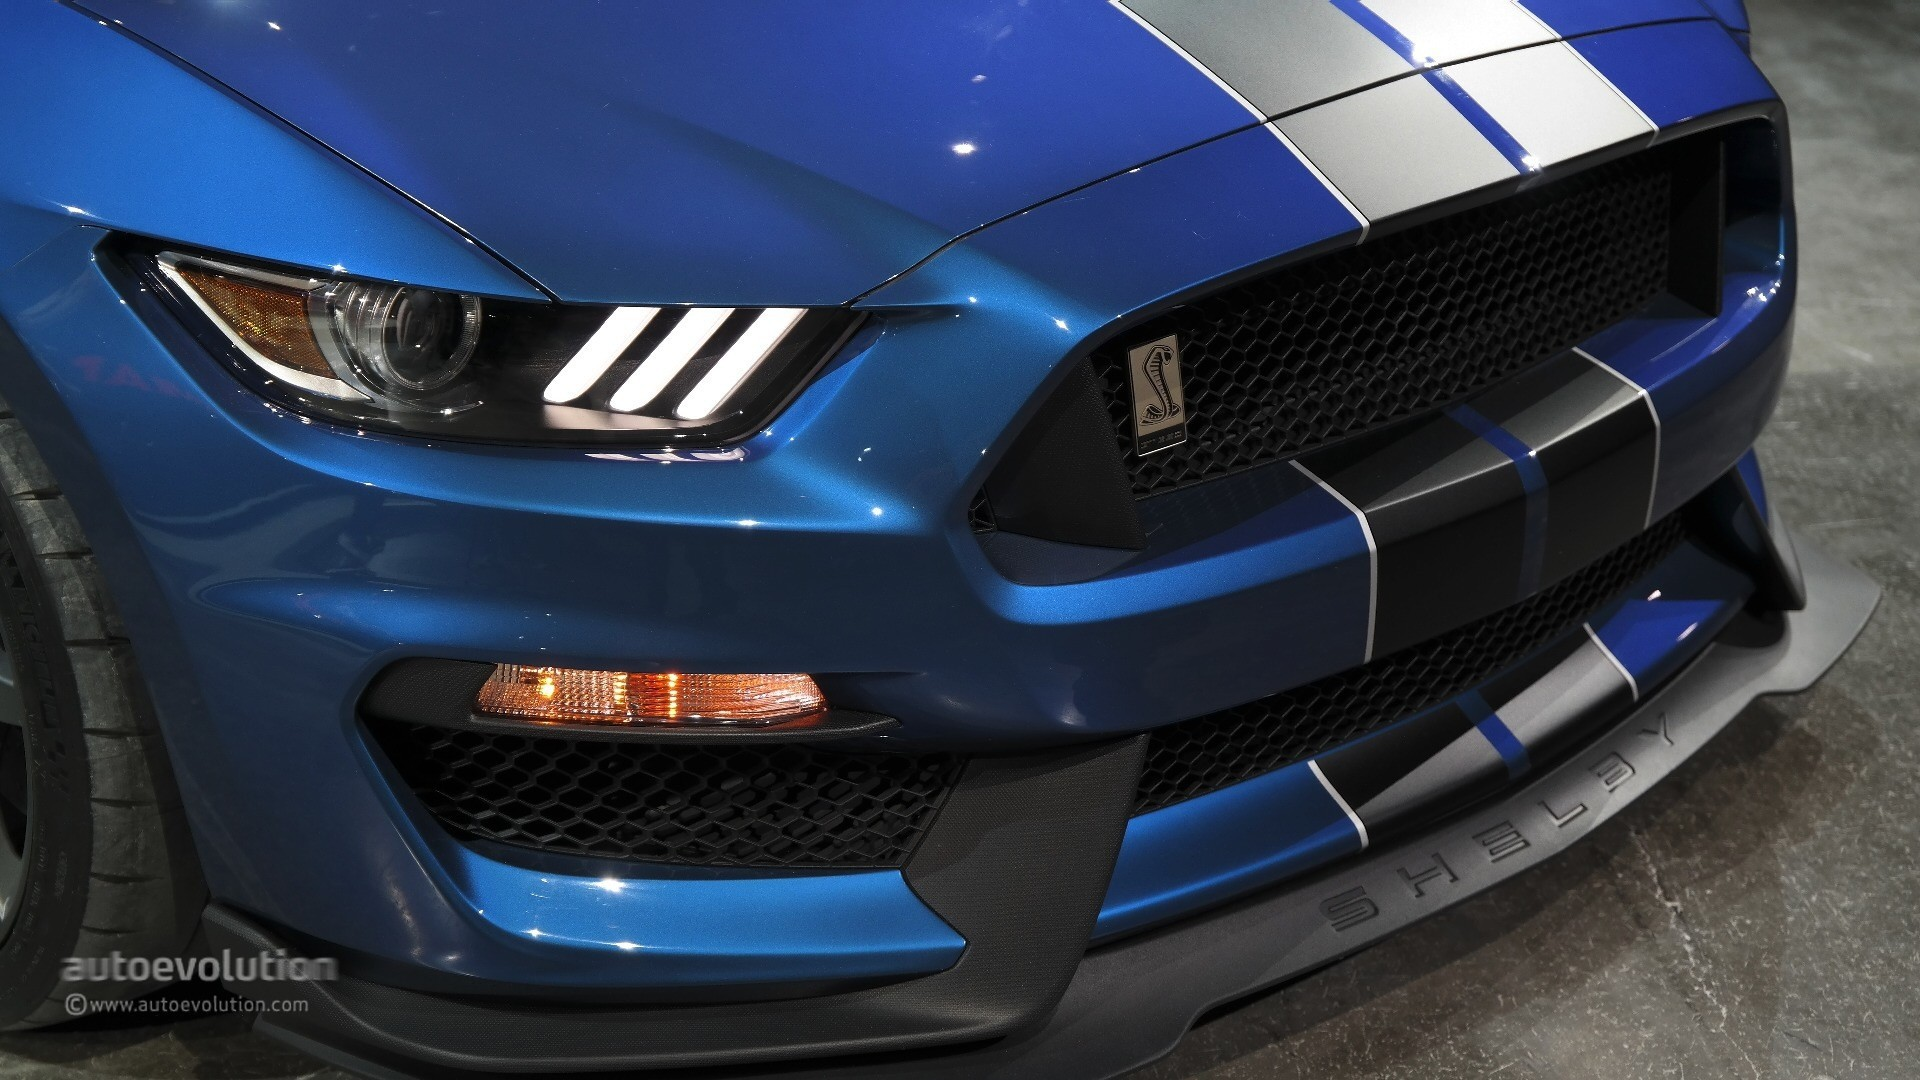 Ford Mustang Shelby GT350 2016 Images